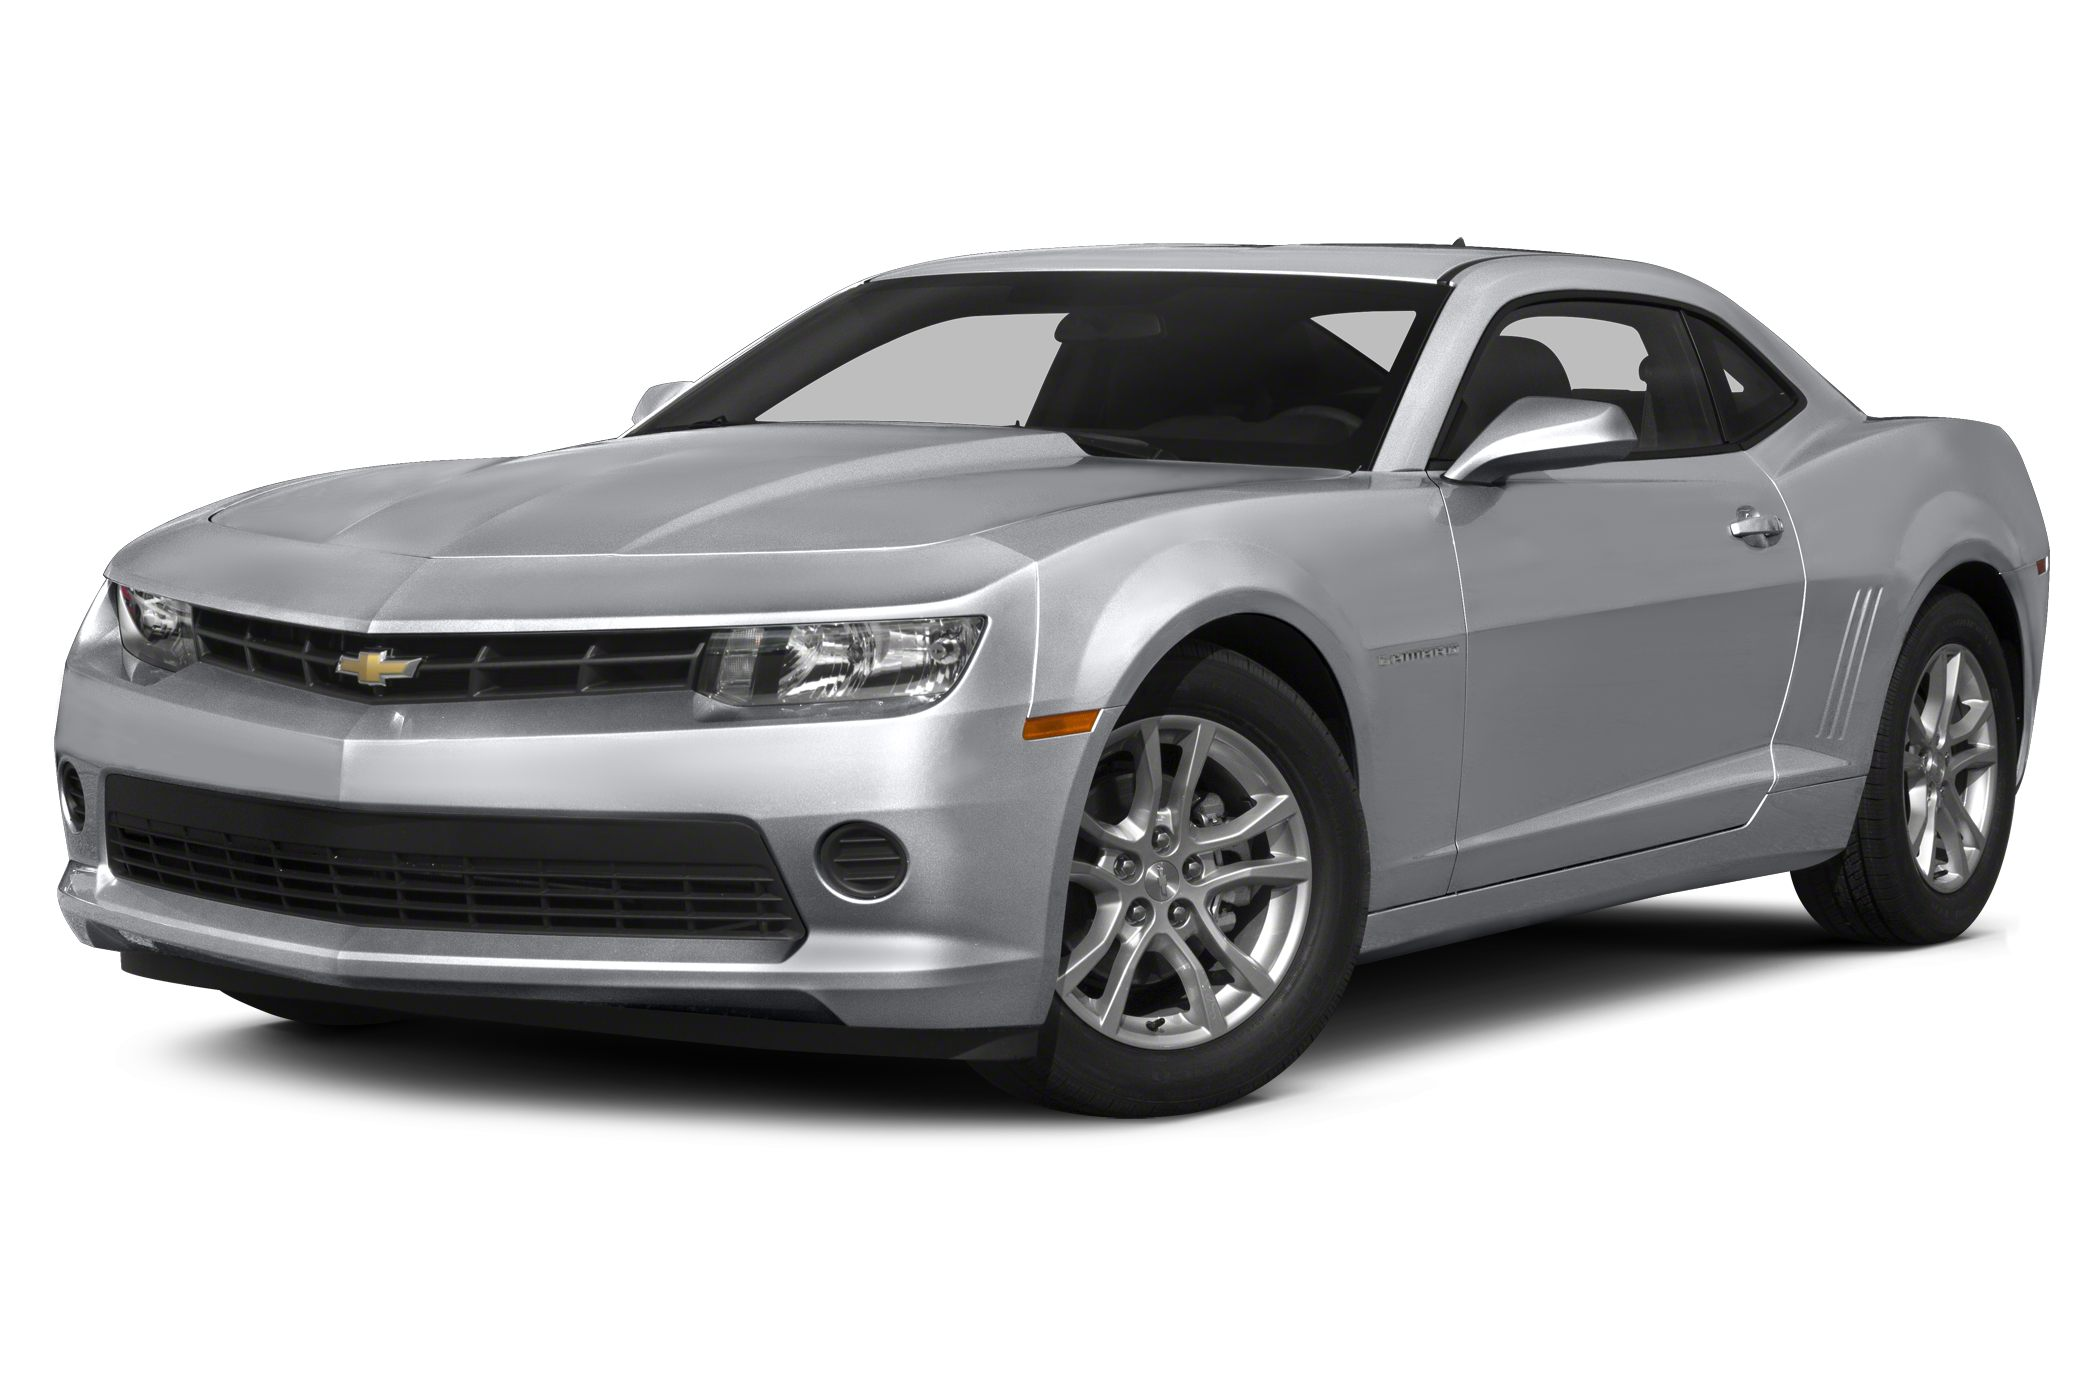 2015 Chevrolet Camaro 1LT Coupe for sale in Minocqua for $31,295 with 0 miles